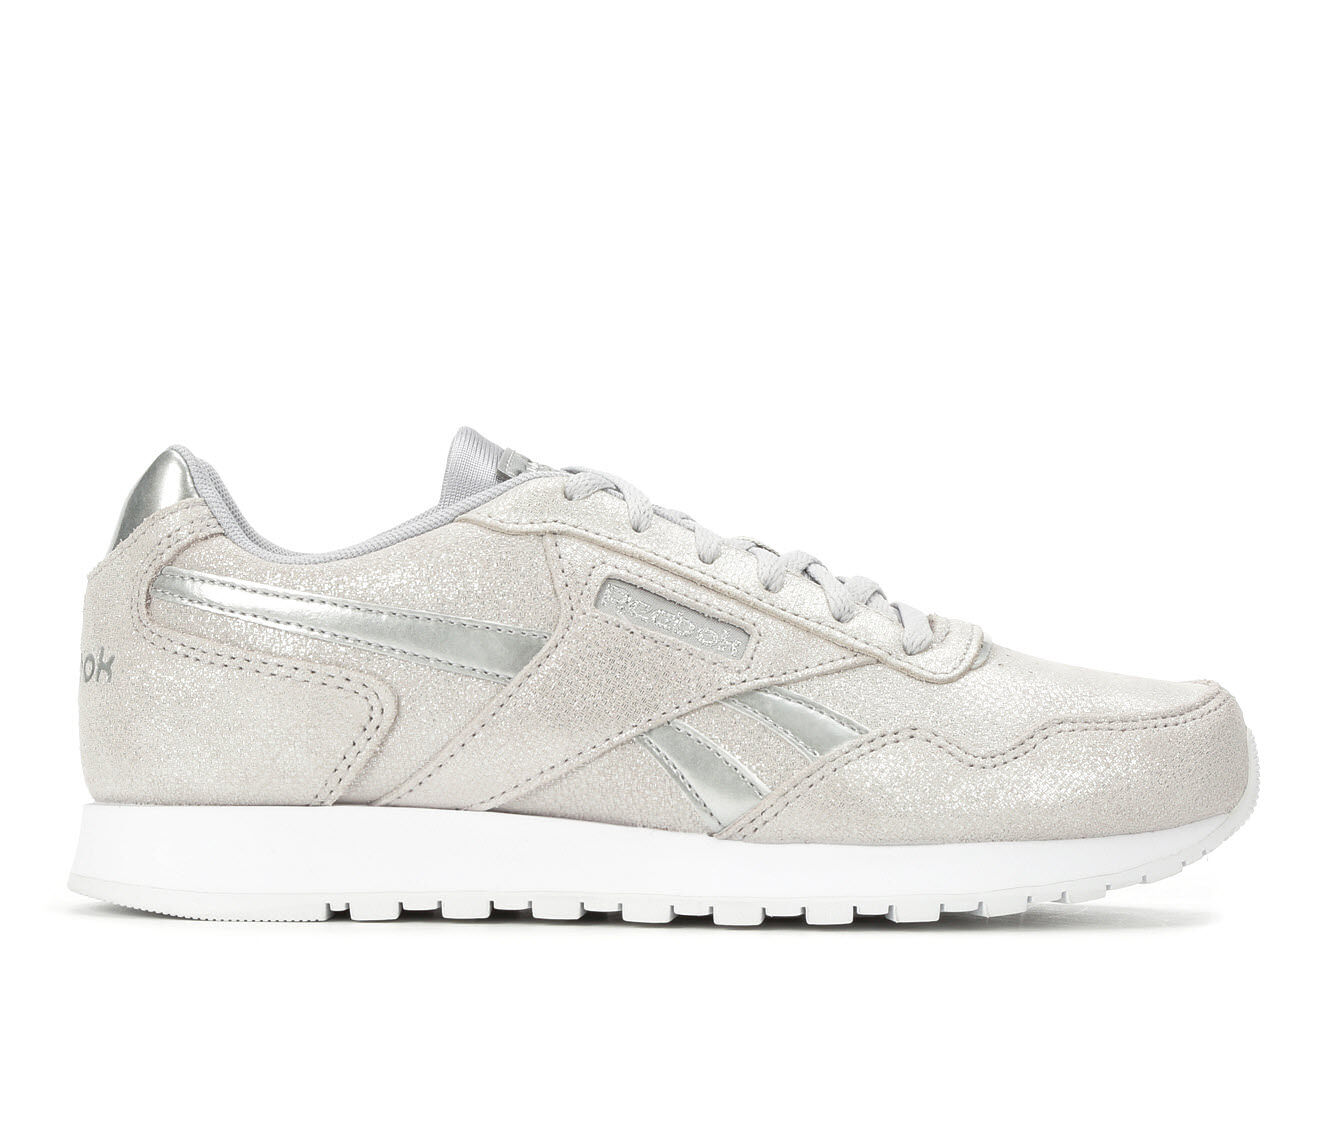 Complete Price Women's Reebok Classic Harman Run Retro Sneakers Silver/Met/Wht